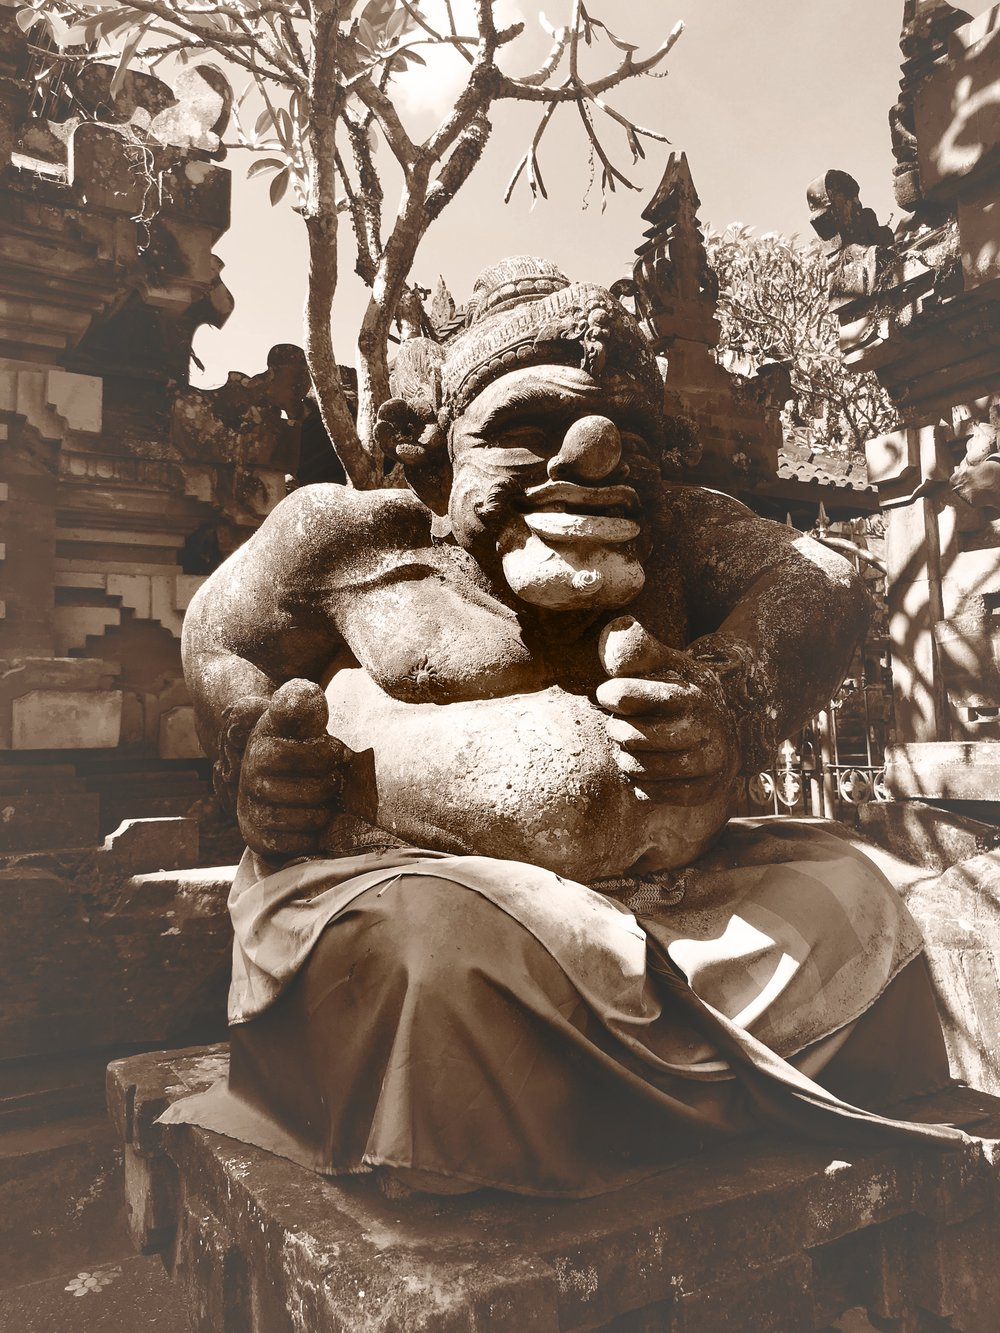 Grotesque statues like this one are characteristic of Gusti Nyoman Lempad's style